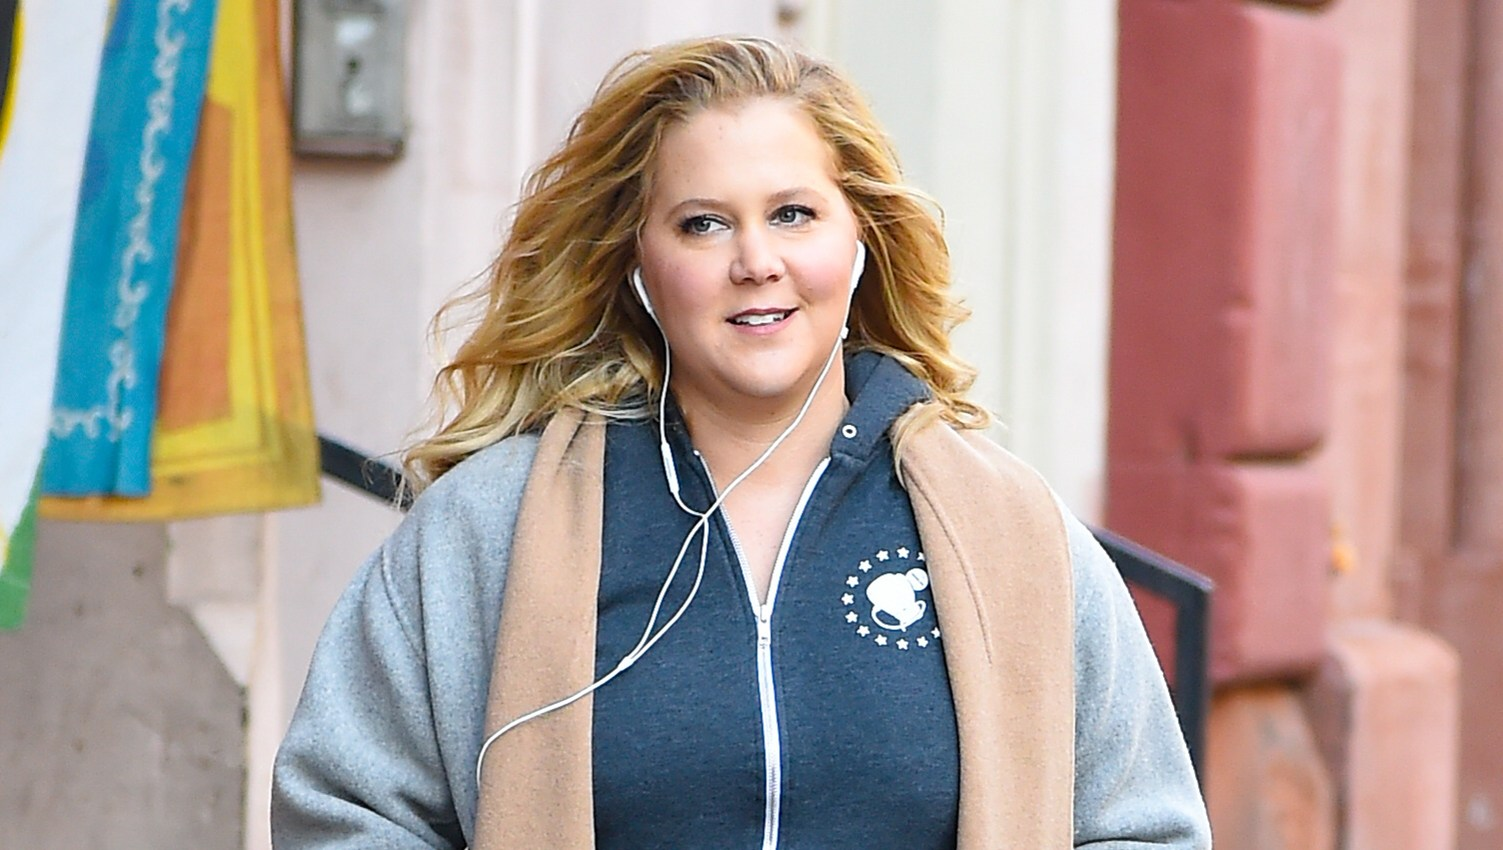 Pregnant Amy Schumer Hilariously Joins Mardi Gras Practice in New Orleans and Shows Off Her Dance Moves